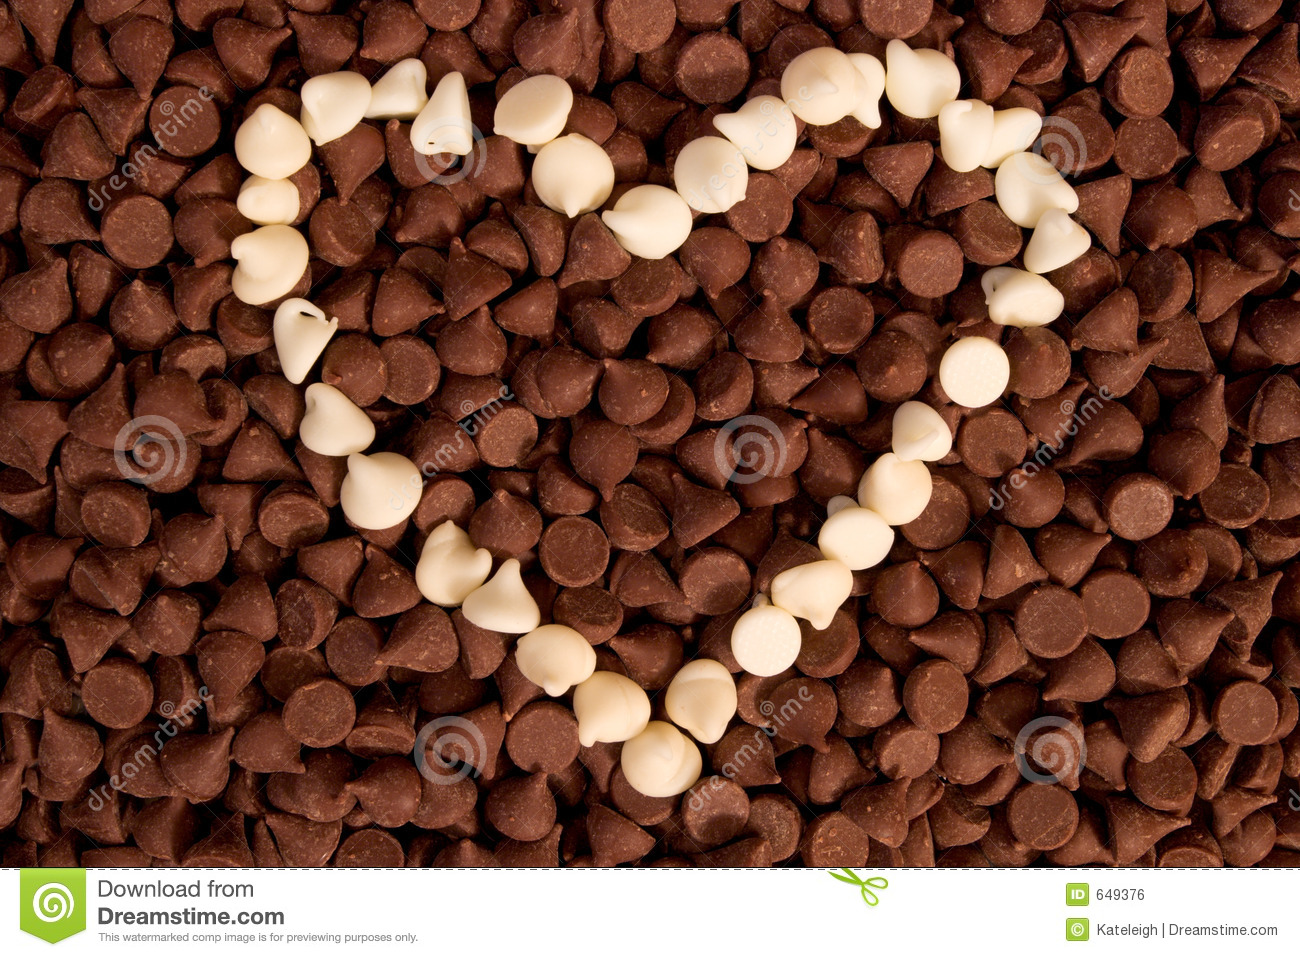 White Chocolate Chip Heart Royalty Free Stock Image - Image: 649376